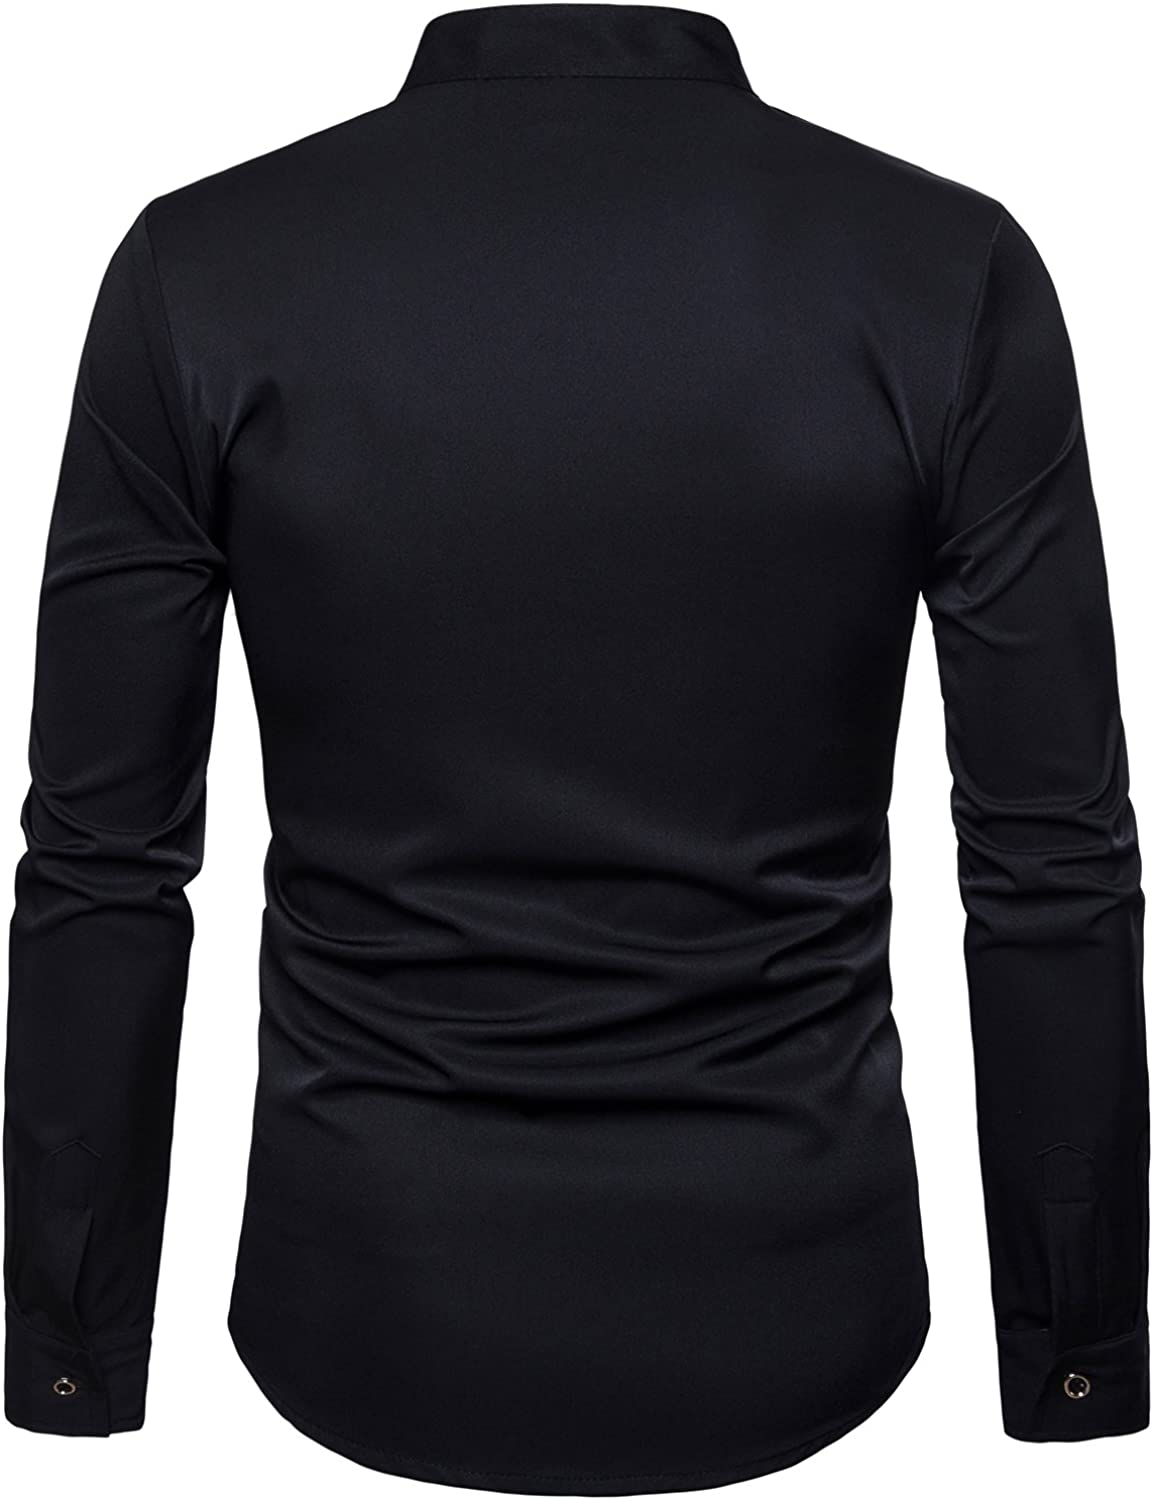 Men Autumn Casual Daily Tops Mens Hipster Fit Long Sleeve Button Embroidery Down Dress Shirts Tops